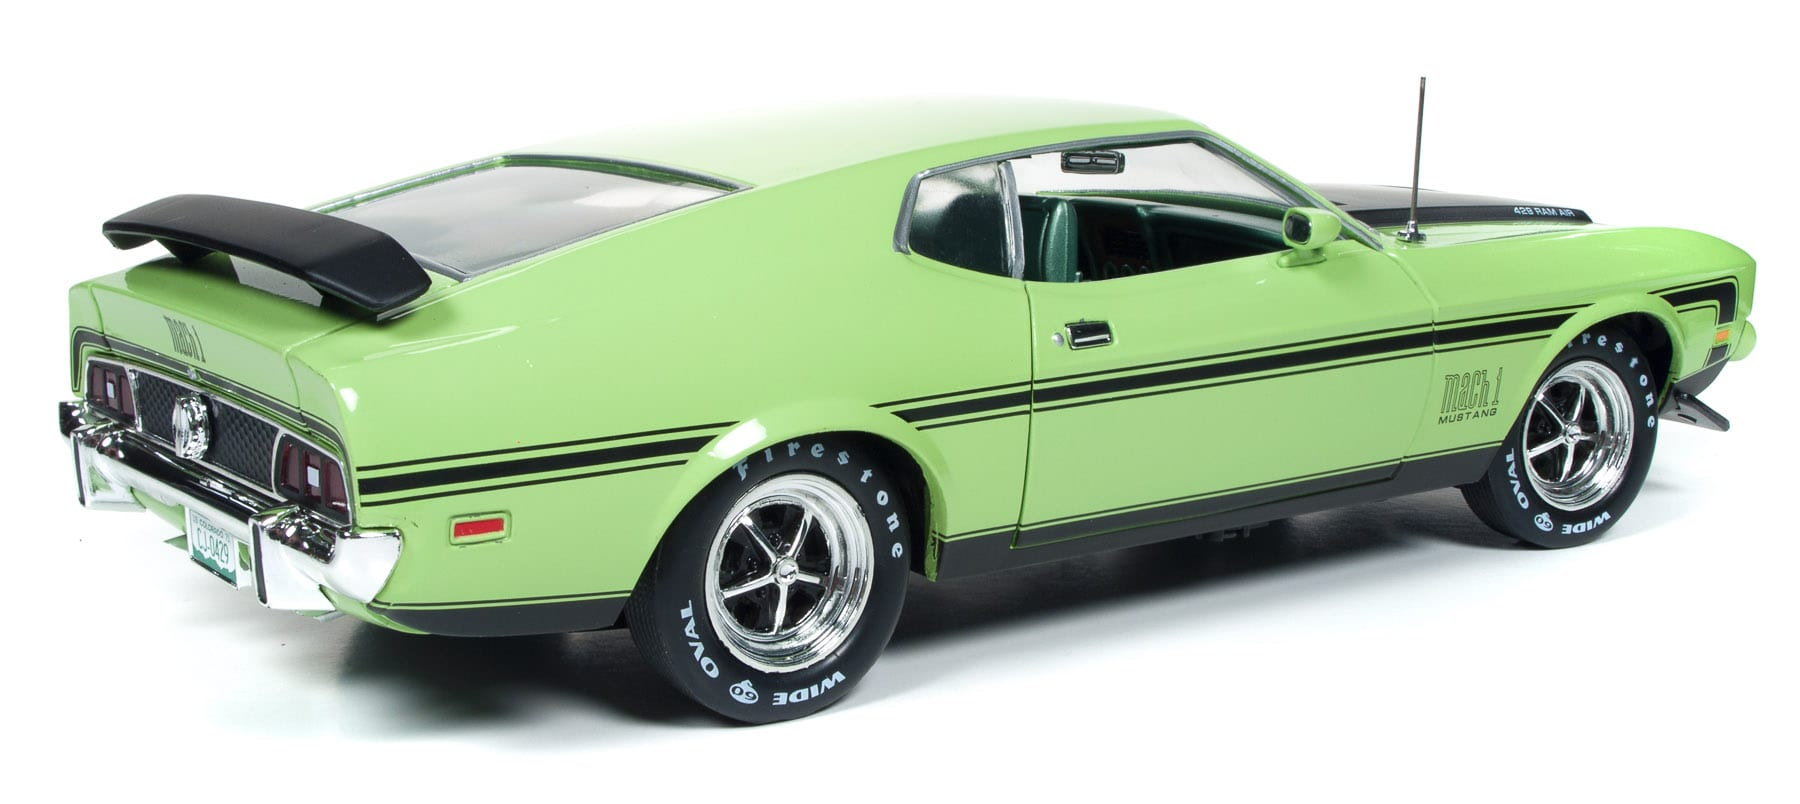 1971 Ford Mustang Mach 1 Round2 1964 Fastback Home Scale 118